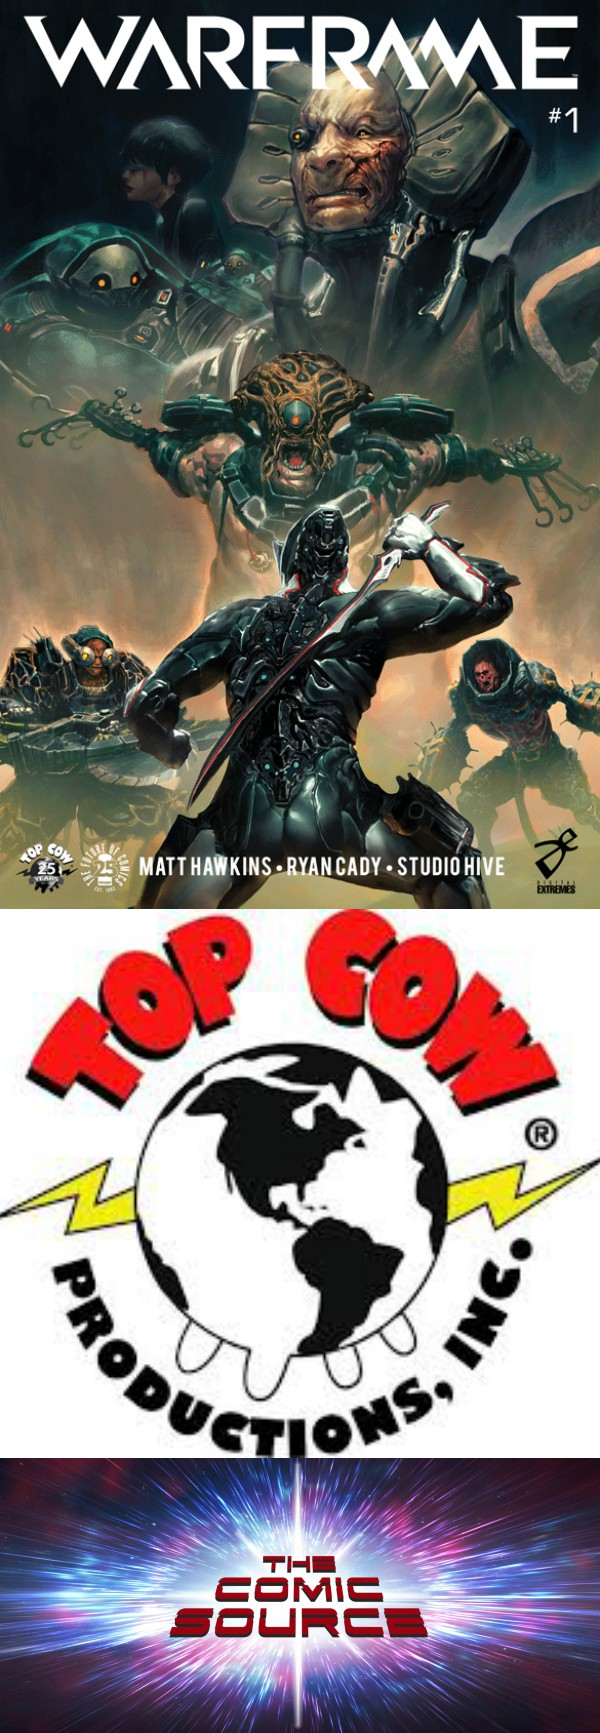 The Comic Source Podcast Episode 279 – Top Cow Thursday Warframe Spotlight